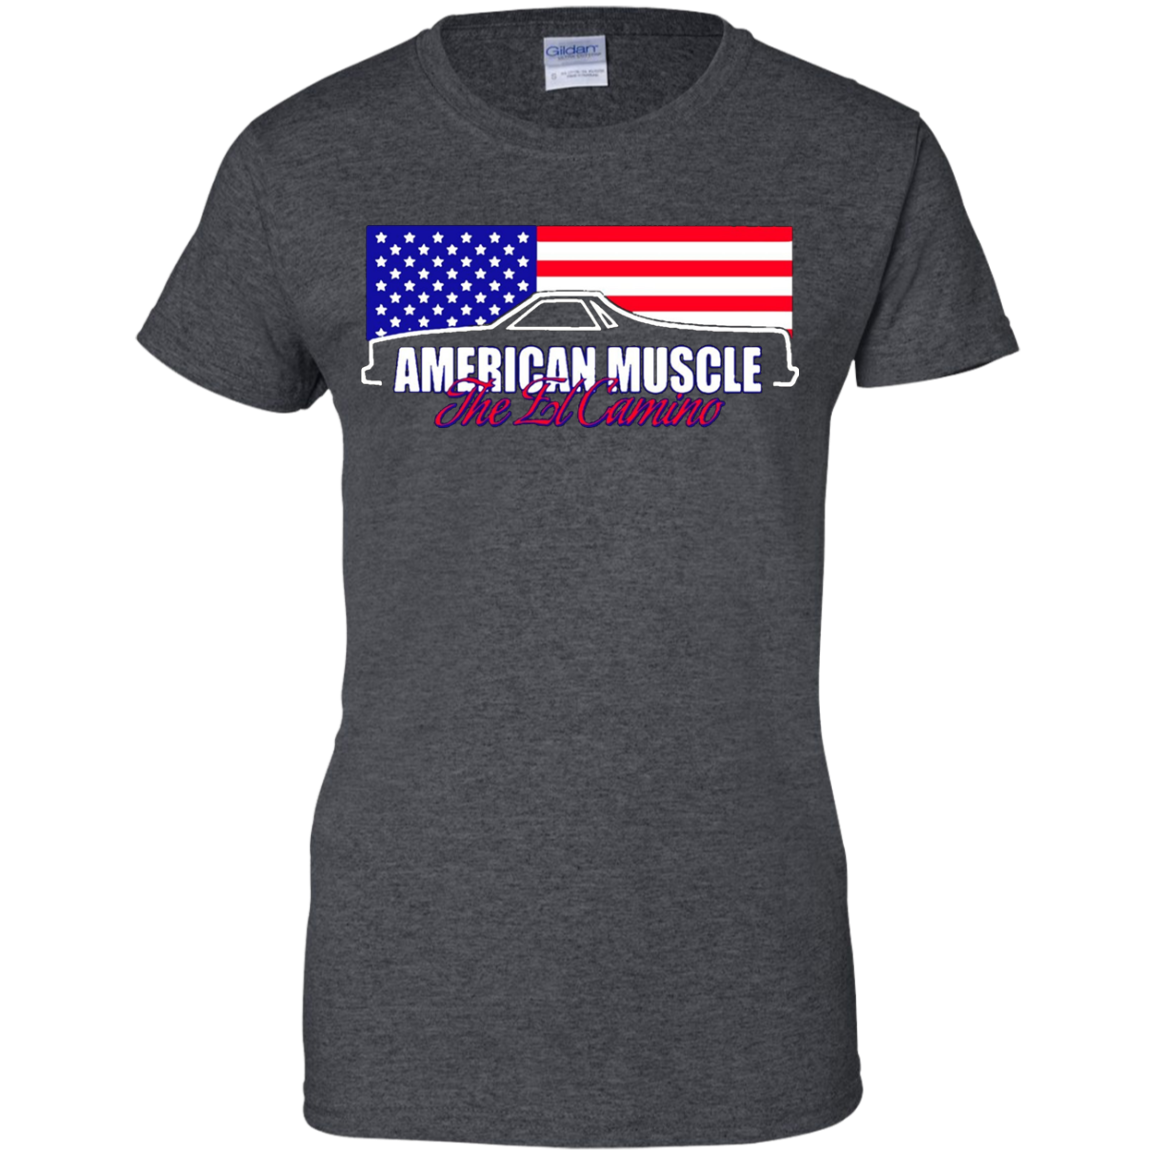 American Muscle The El Camino T Shirt